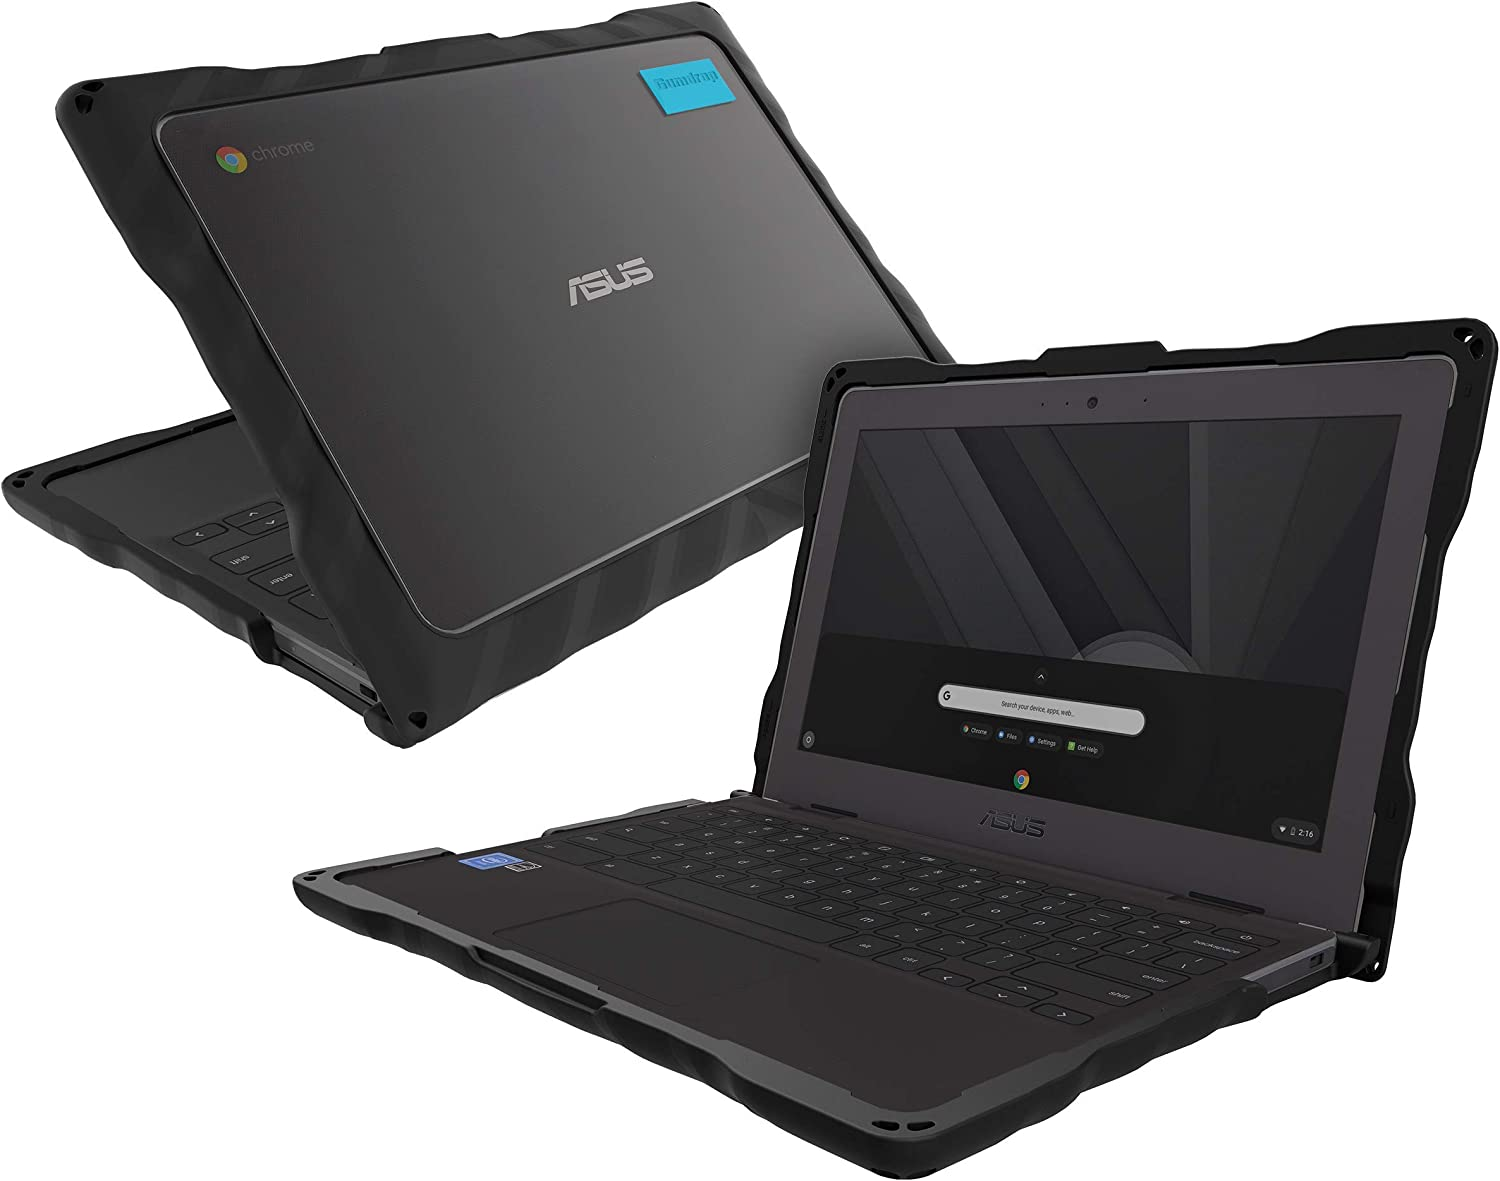 Long-awaited Gumdrop DropTech Case Designed for C204 Max 53% OFF ASUS Chromebook EE Lapto